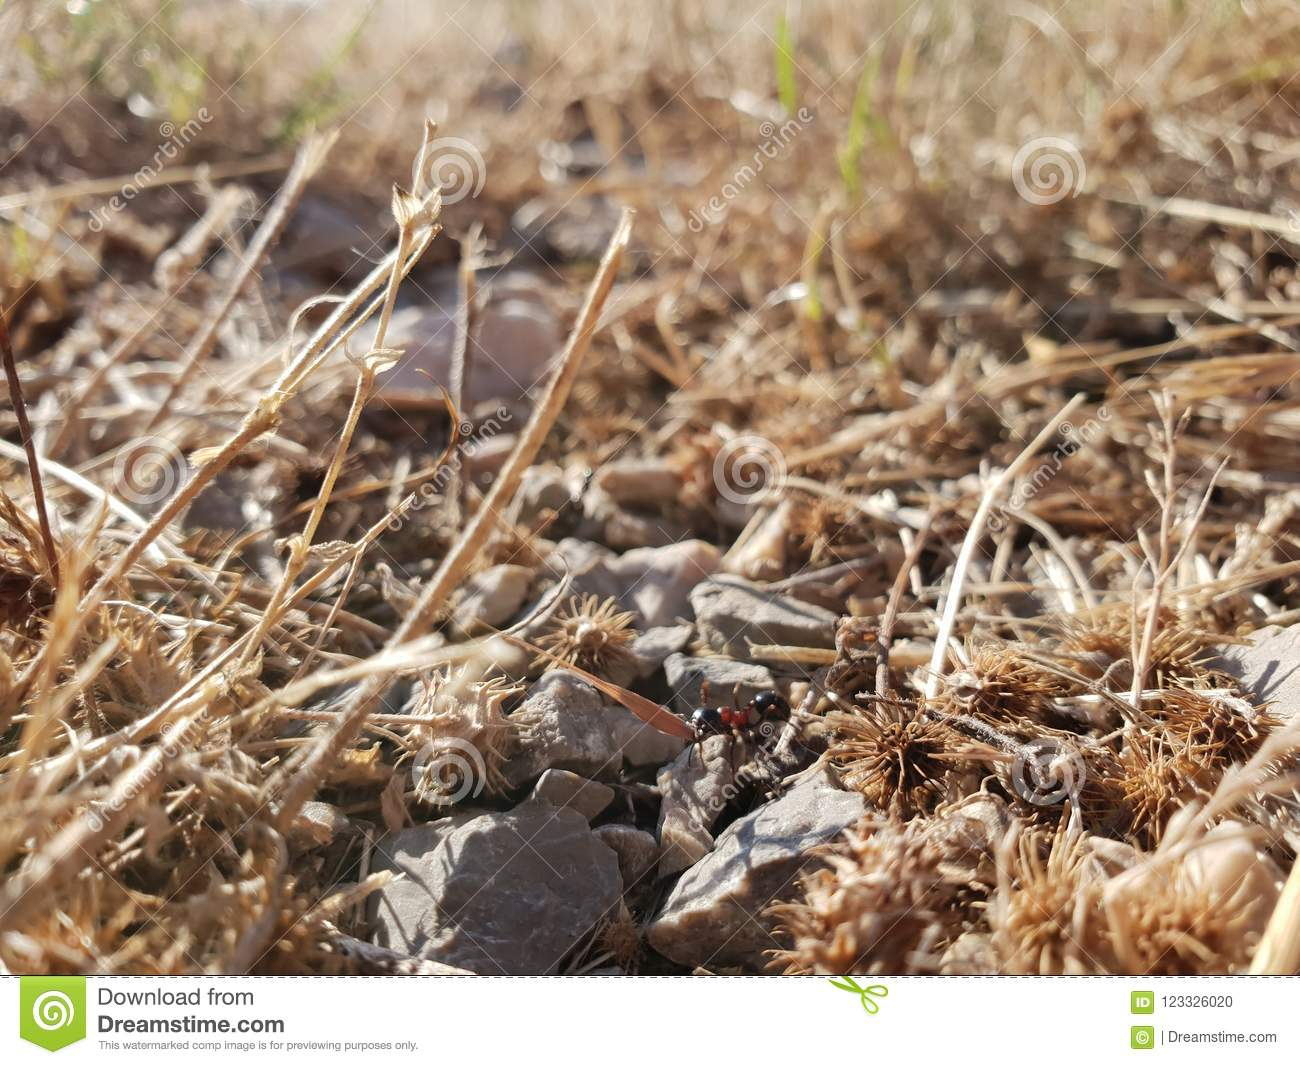 Dry rocky ground with ant